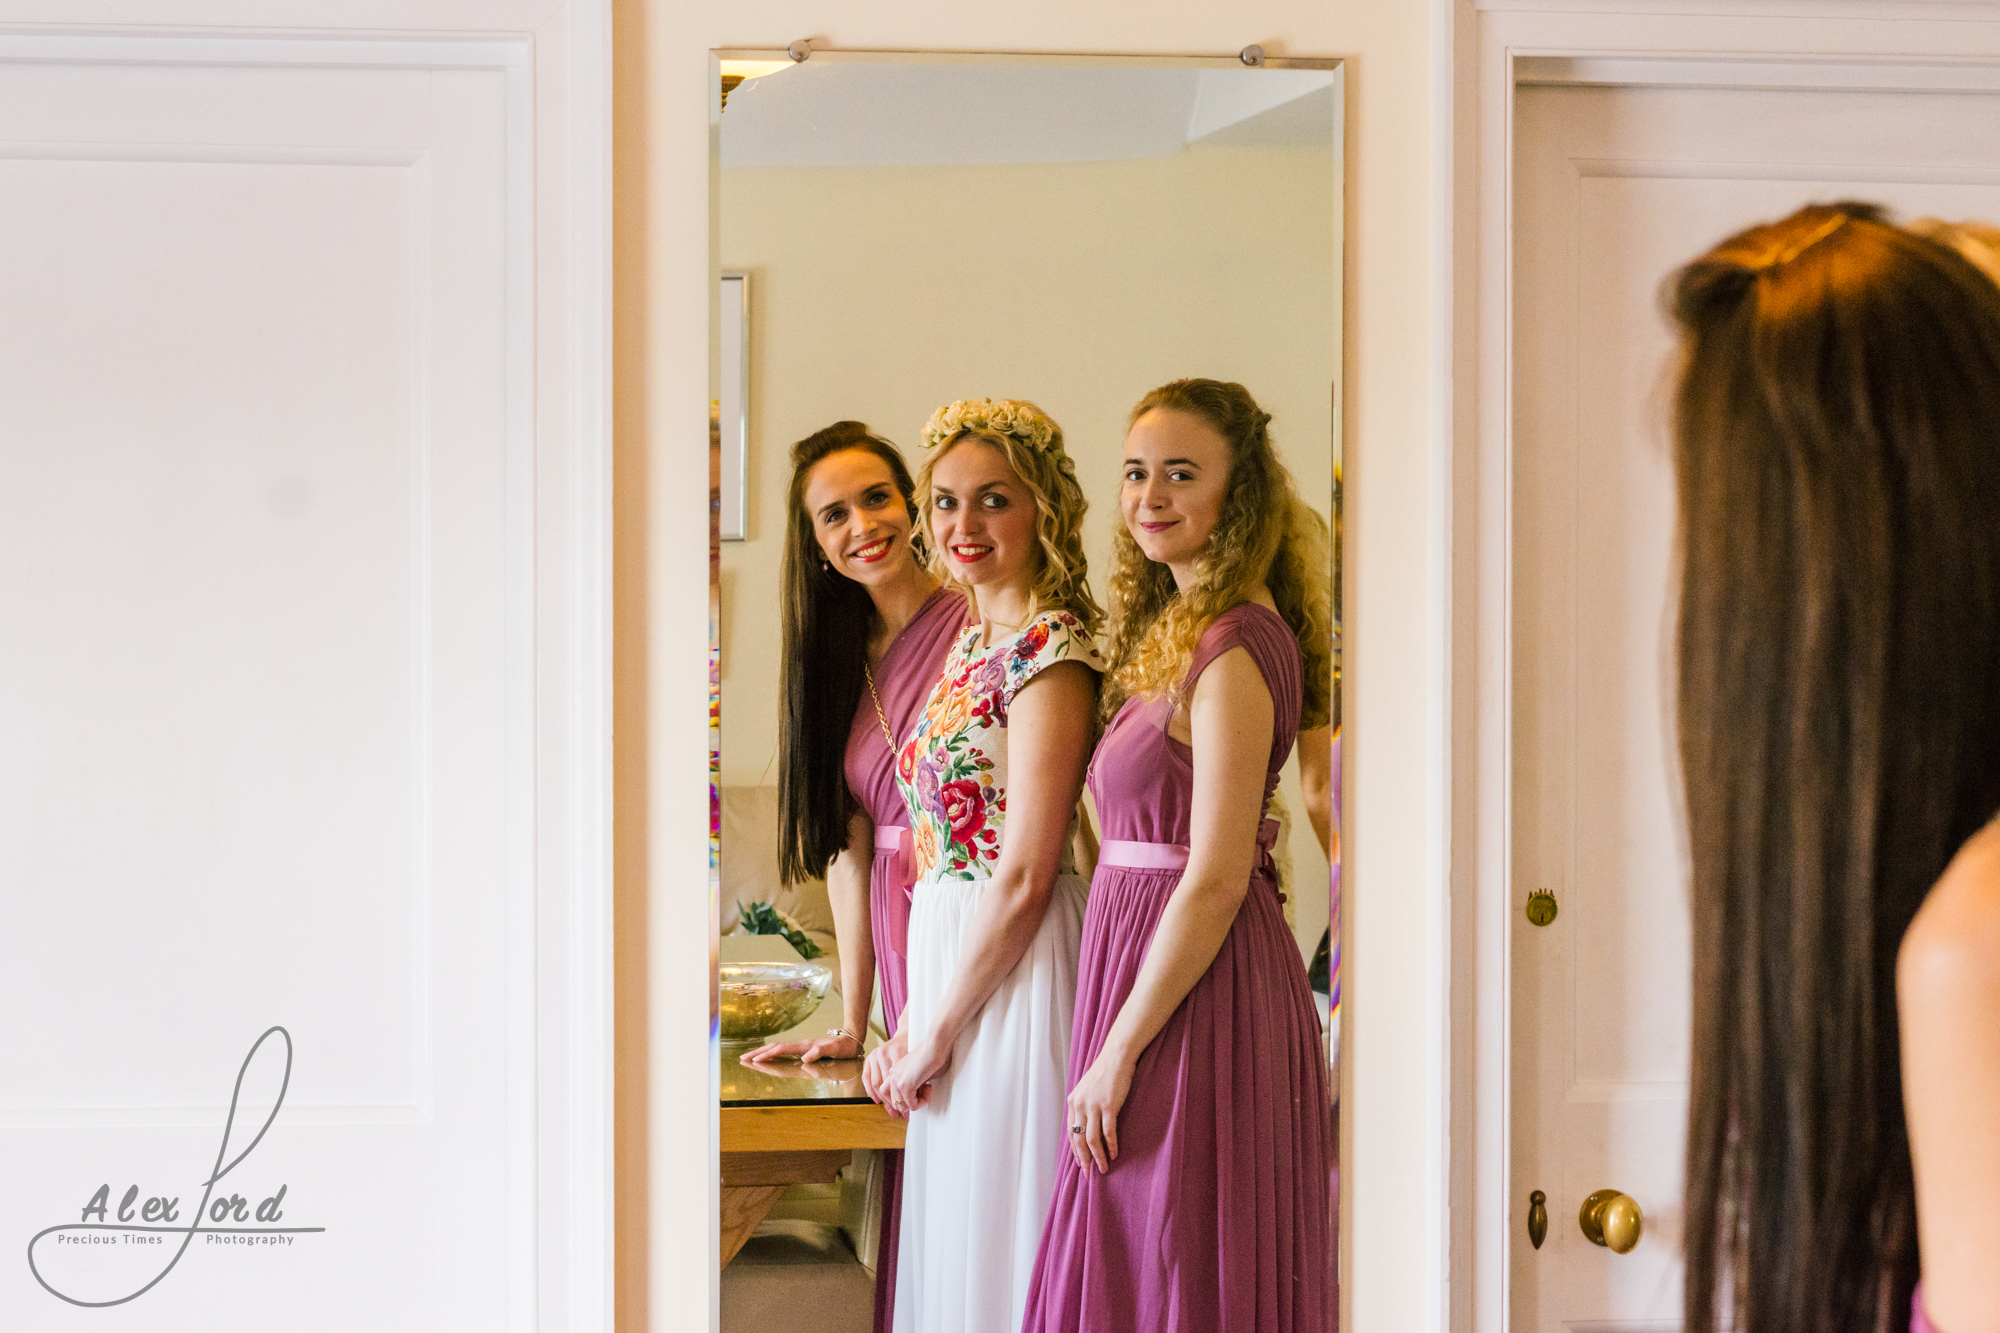 Bride and two bridesmaids dressed in dark dusky pink line up to look at themselves in the mirror before the wedding ceremony